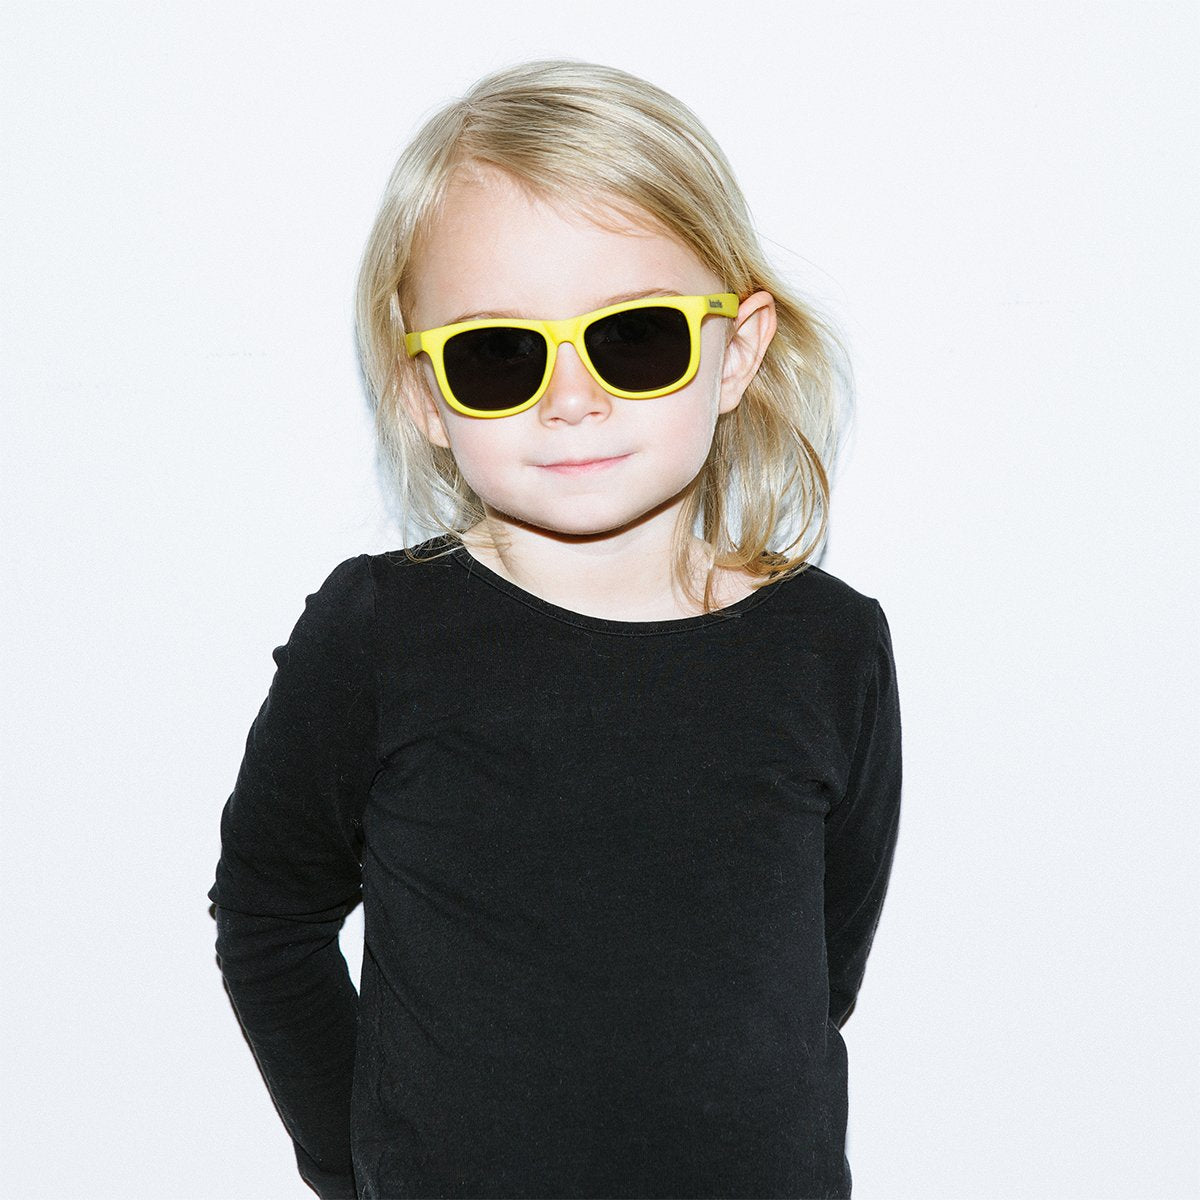 Hipsterkid Classics Kids Sunglasses - Yellow (3-6 years)